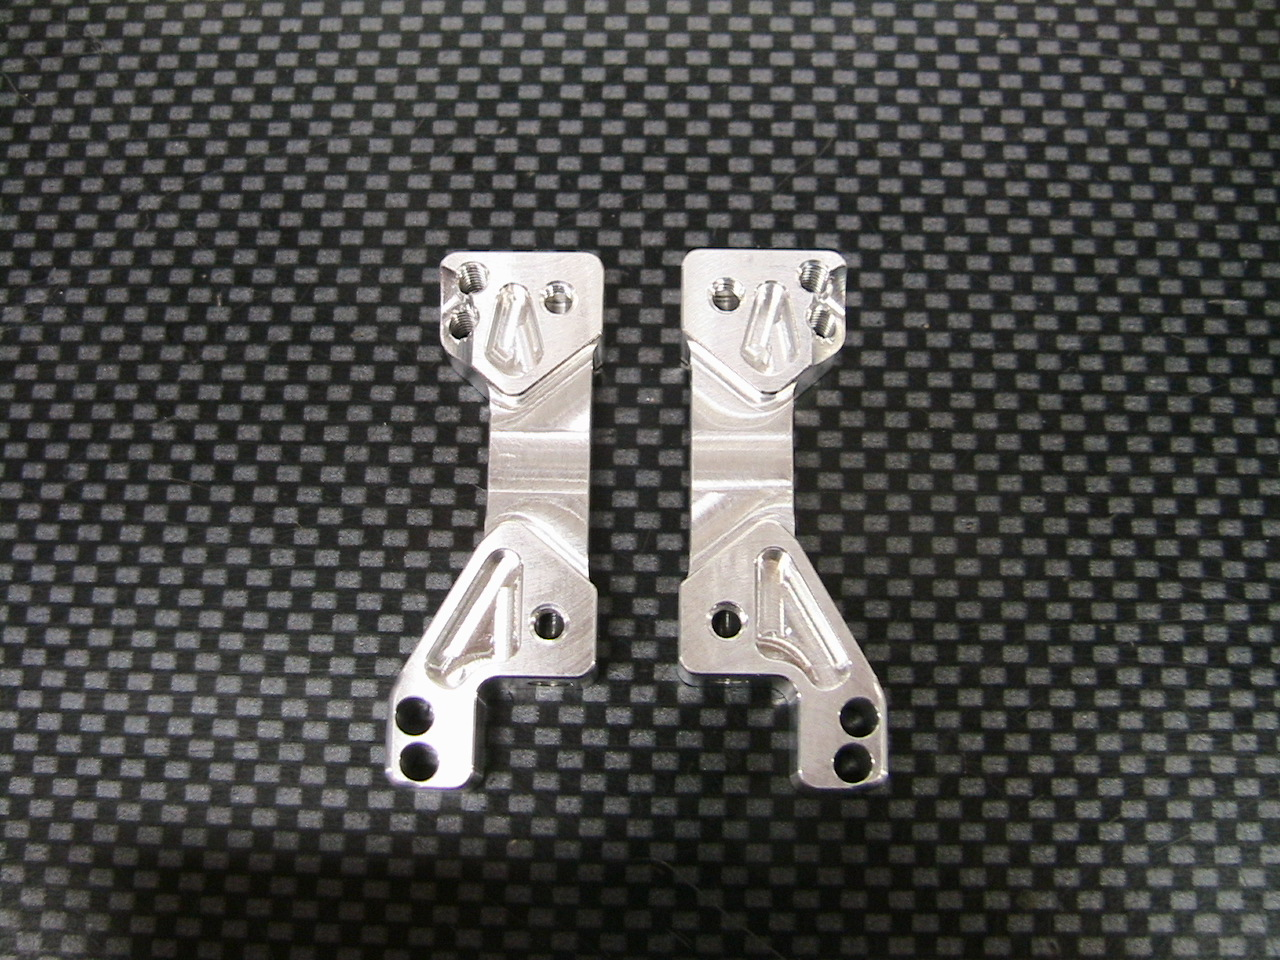 Putnam 0/2 Degree Terminator Rear Toe Blocks